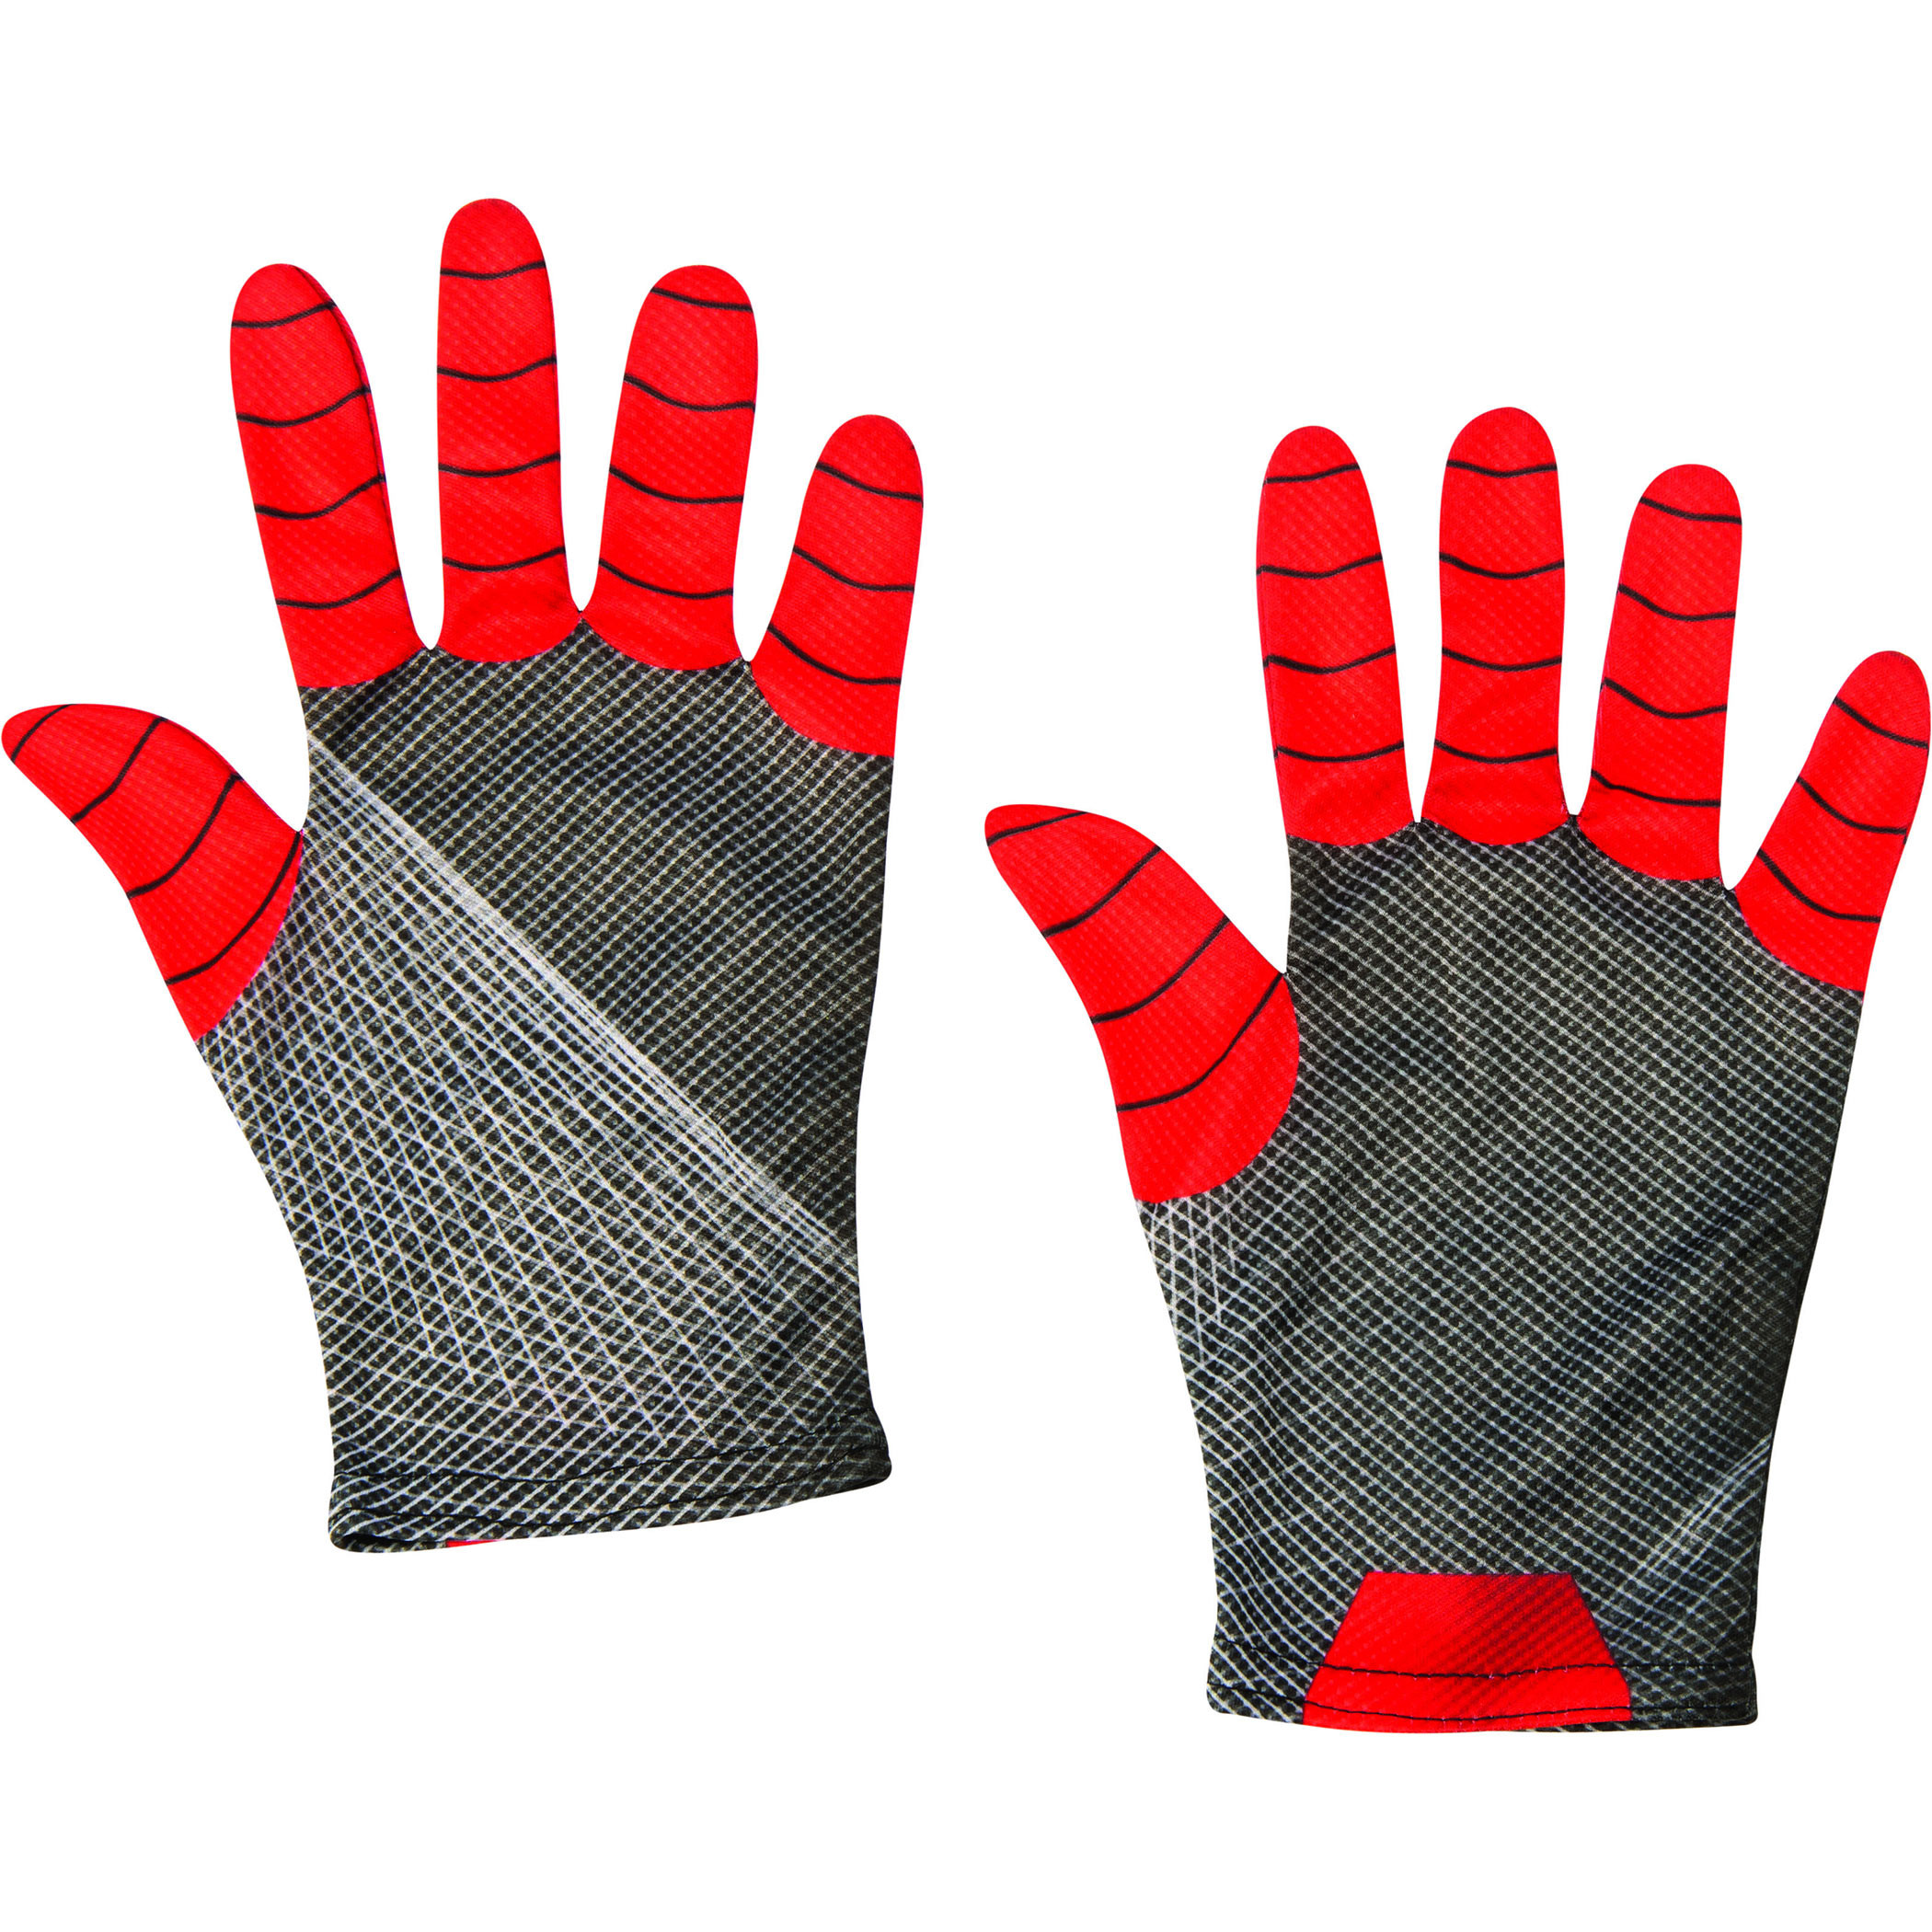 Spider-Man: Far From Home Red and Black Gloves